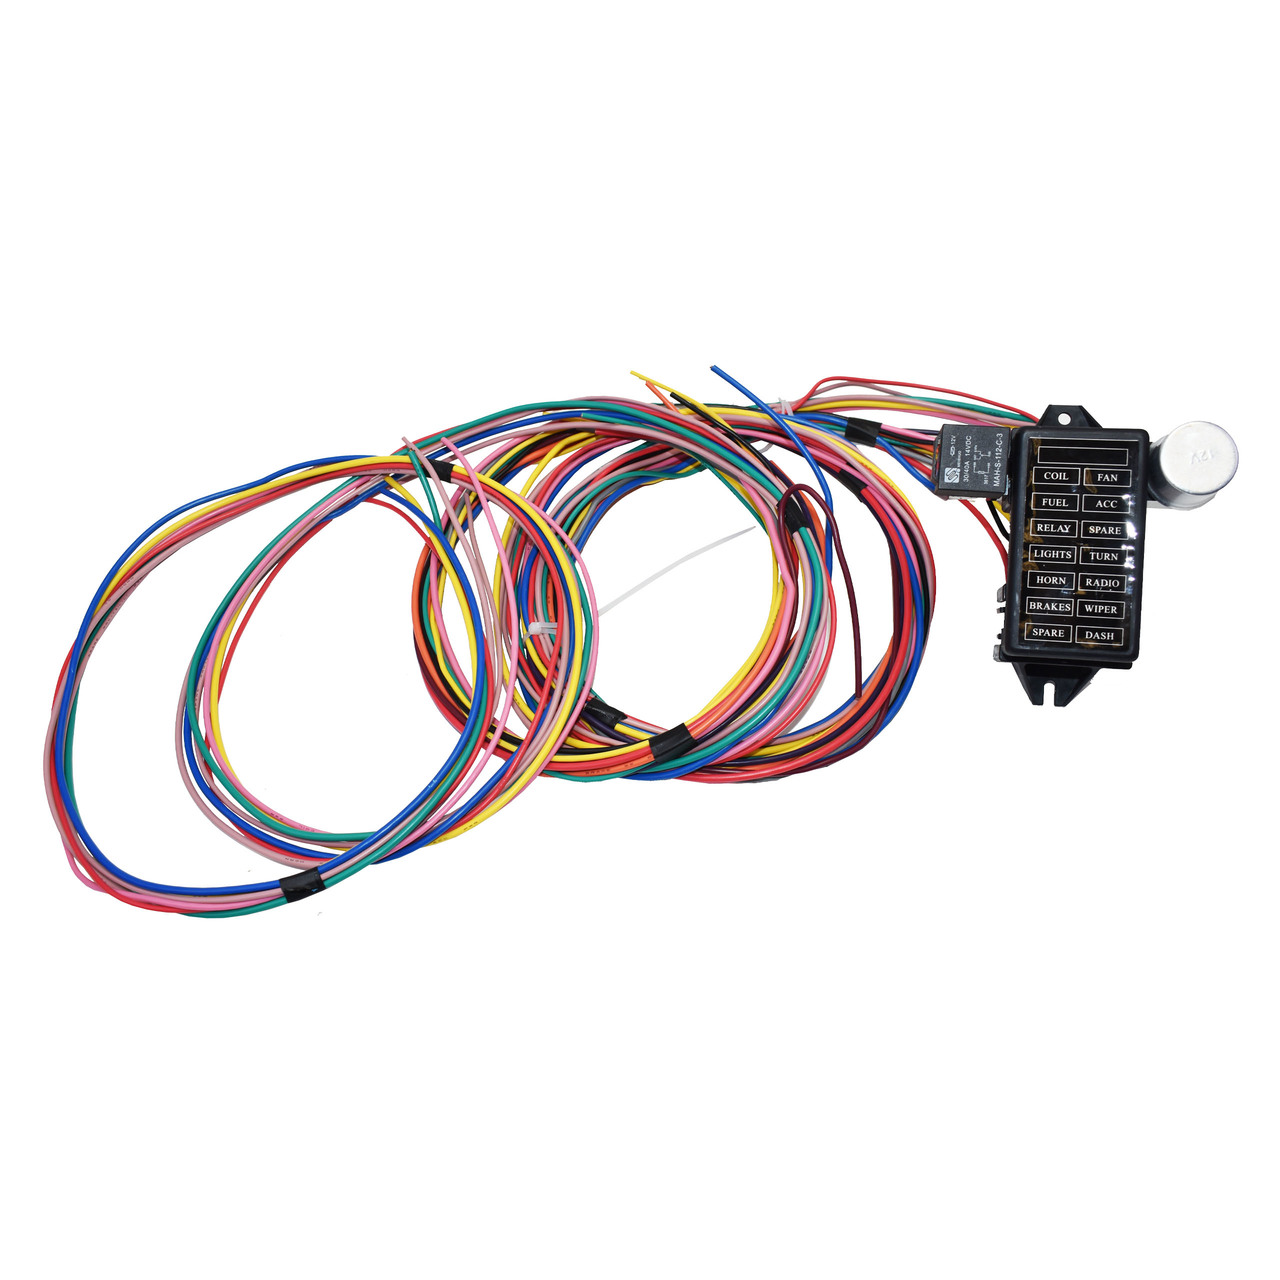 A-Team Performance 14 Circuit Basic Wire Kit Small Wiring Harness Rat  Street Rod Sand Car TruckSouthwest Performance Parts